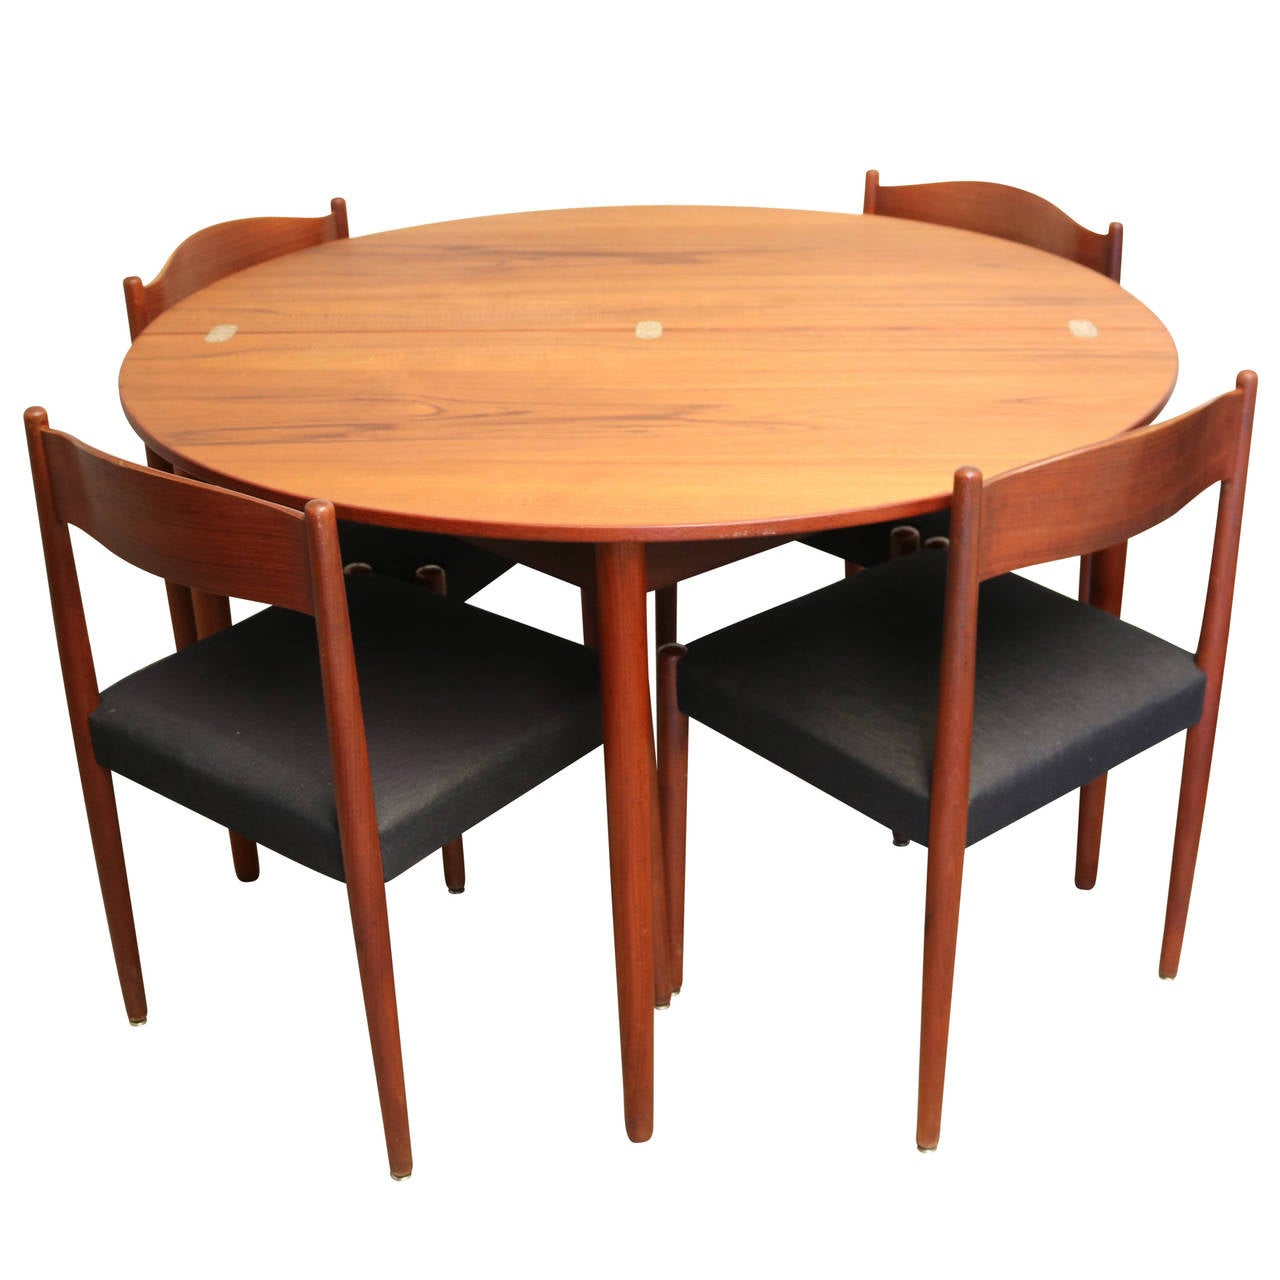 Round teak folding dining table and chairs by poul volther for Round dining table and chairs